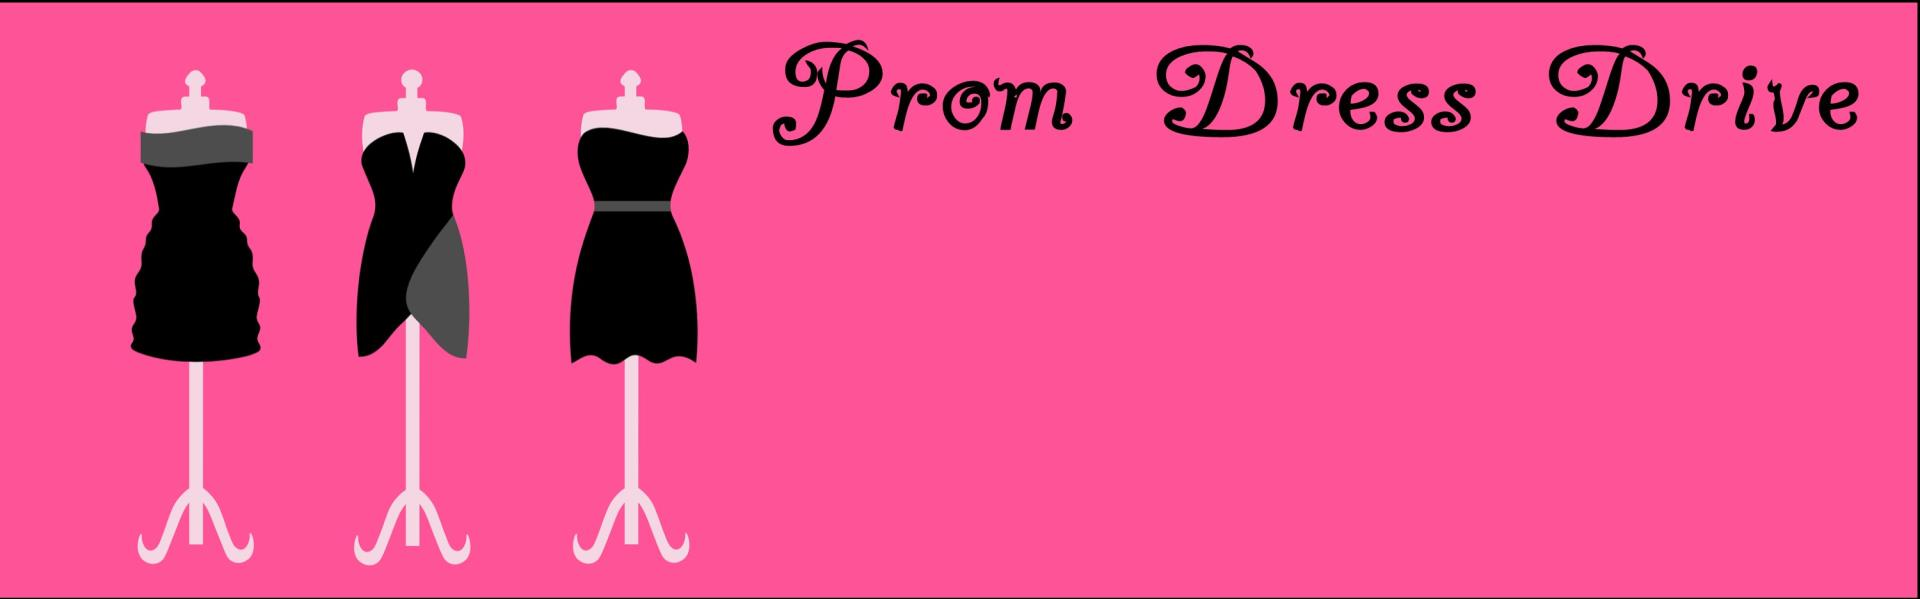 Prom Dress Drive-image of three dress forms with dresses